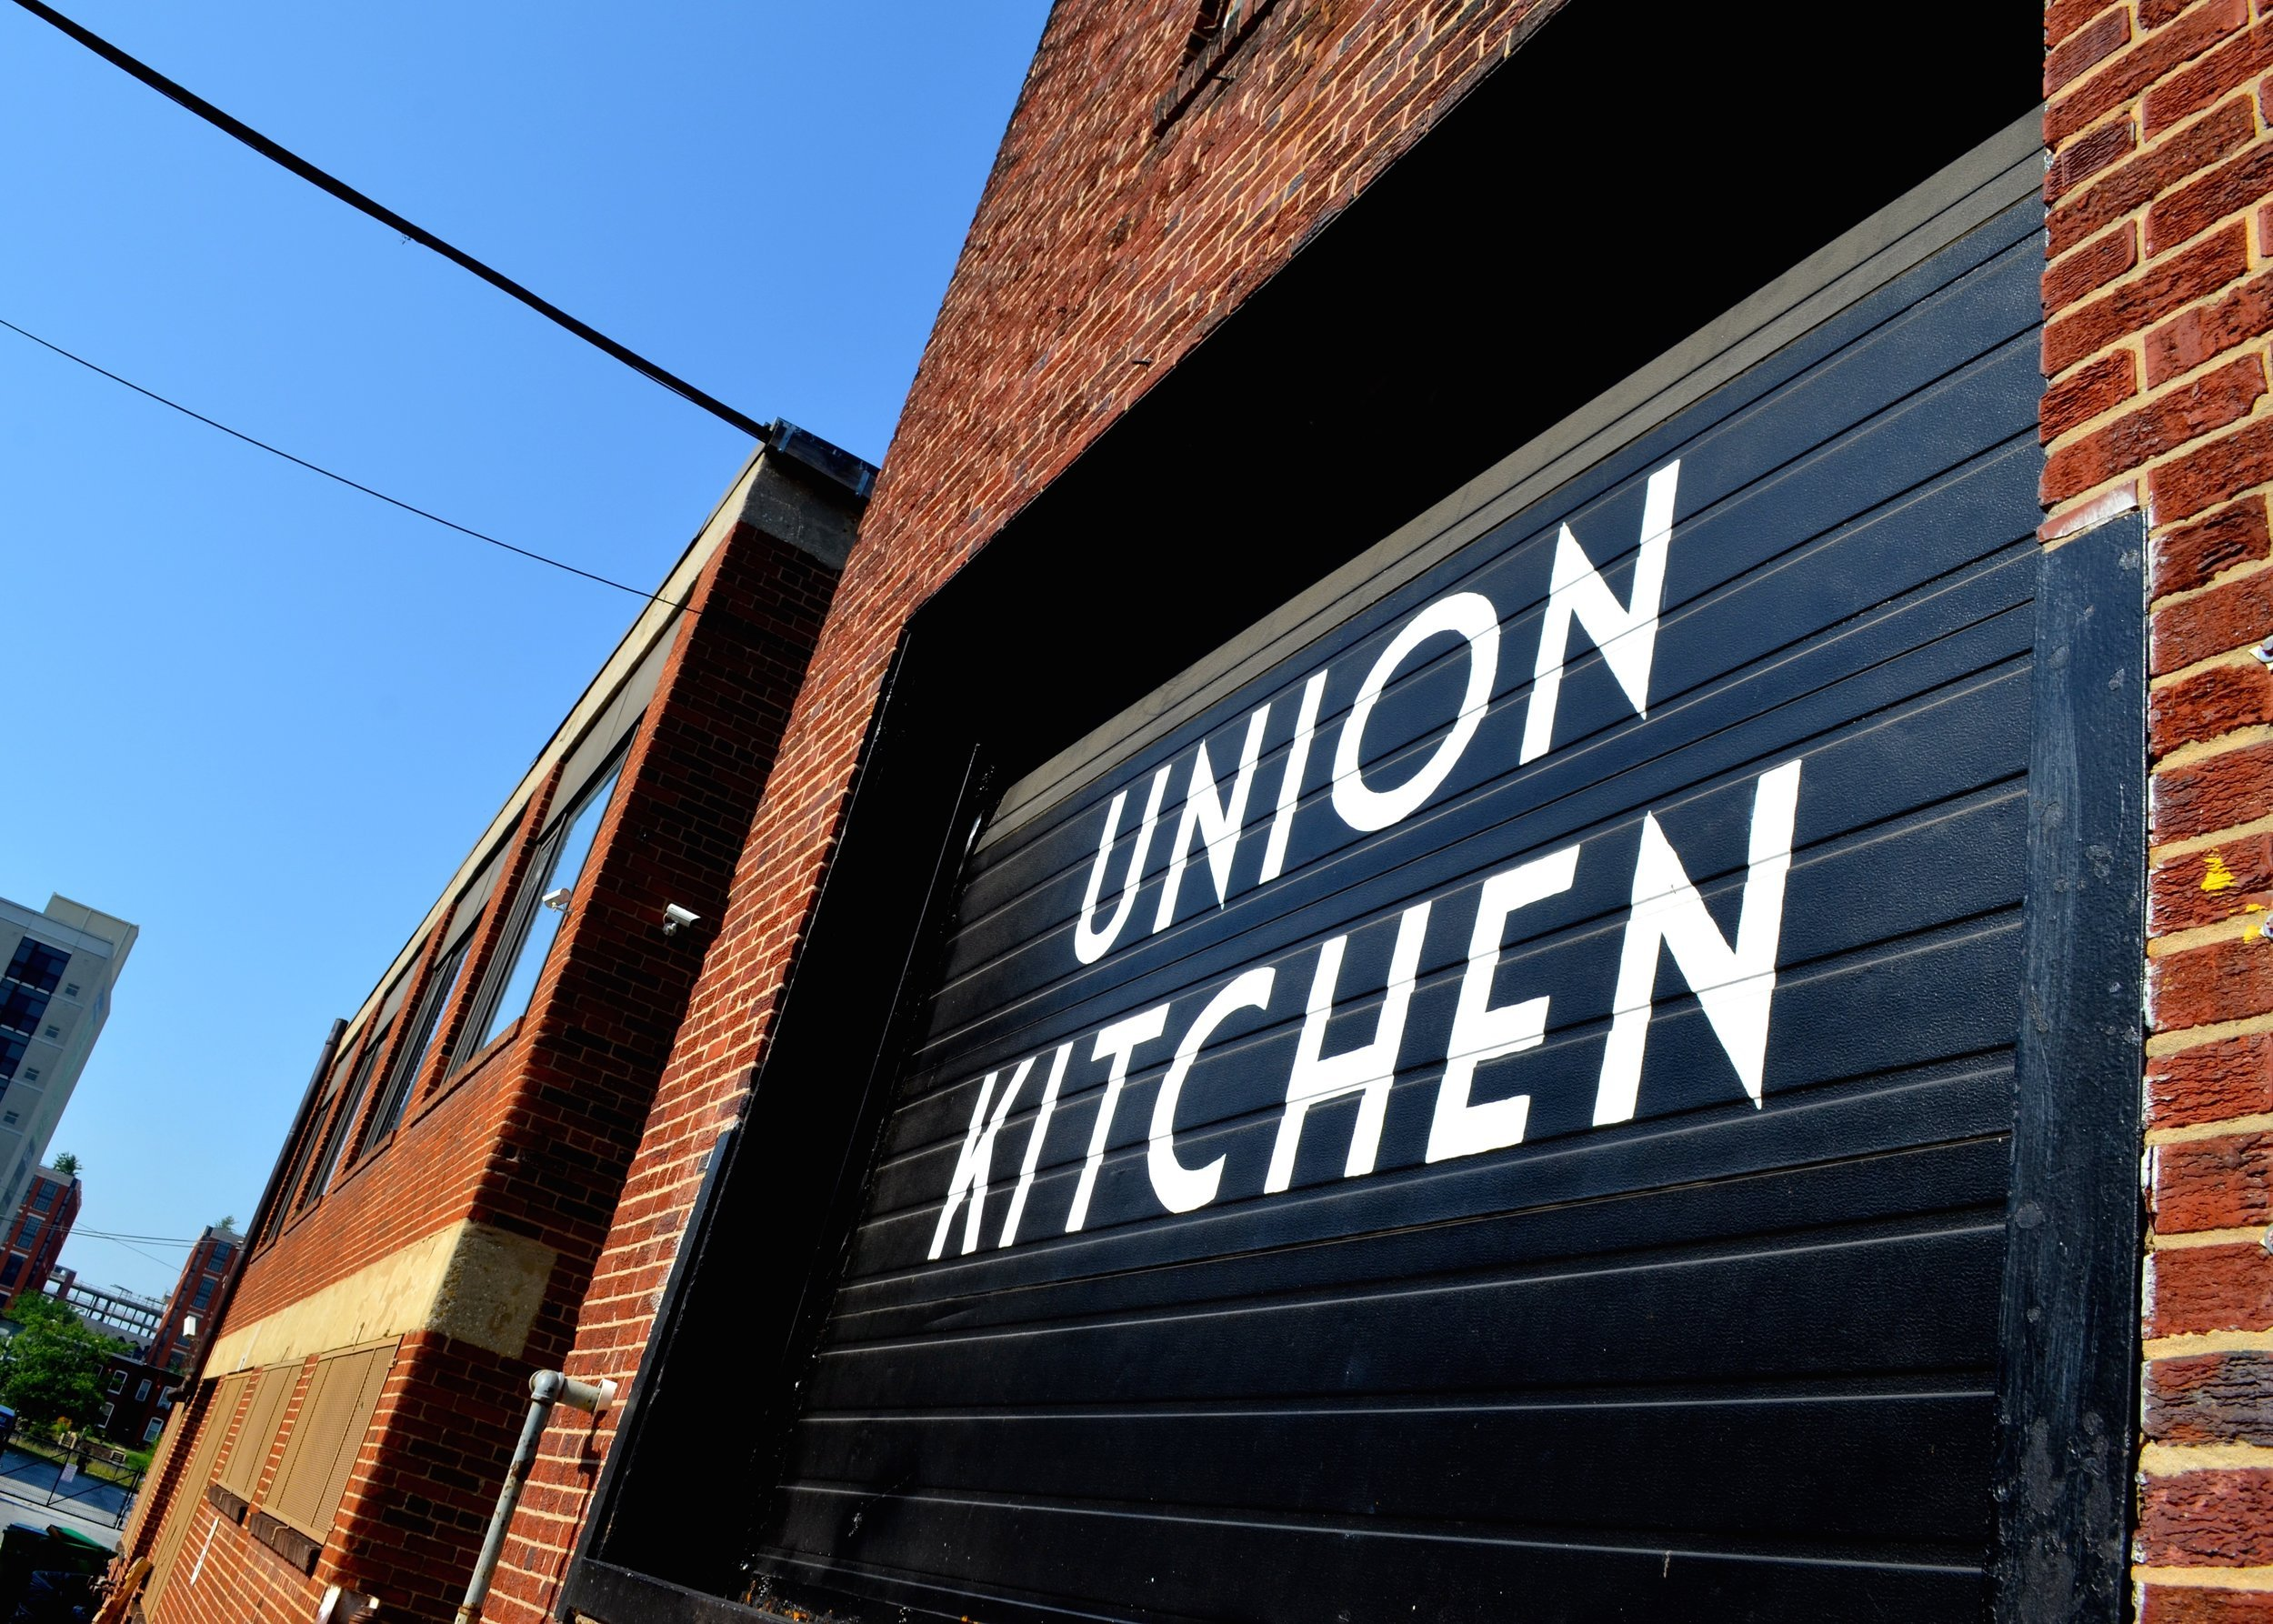 Copy+of+Union+Kitchen+garage+door,+blue+sky+in+the+background-+Rebecca+Dickerson+(1)+(1)